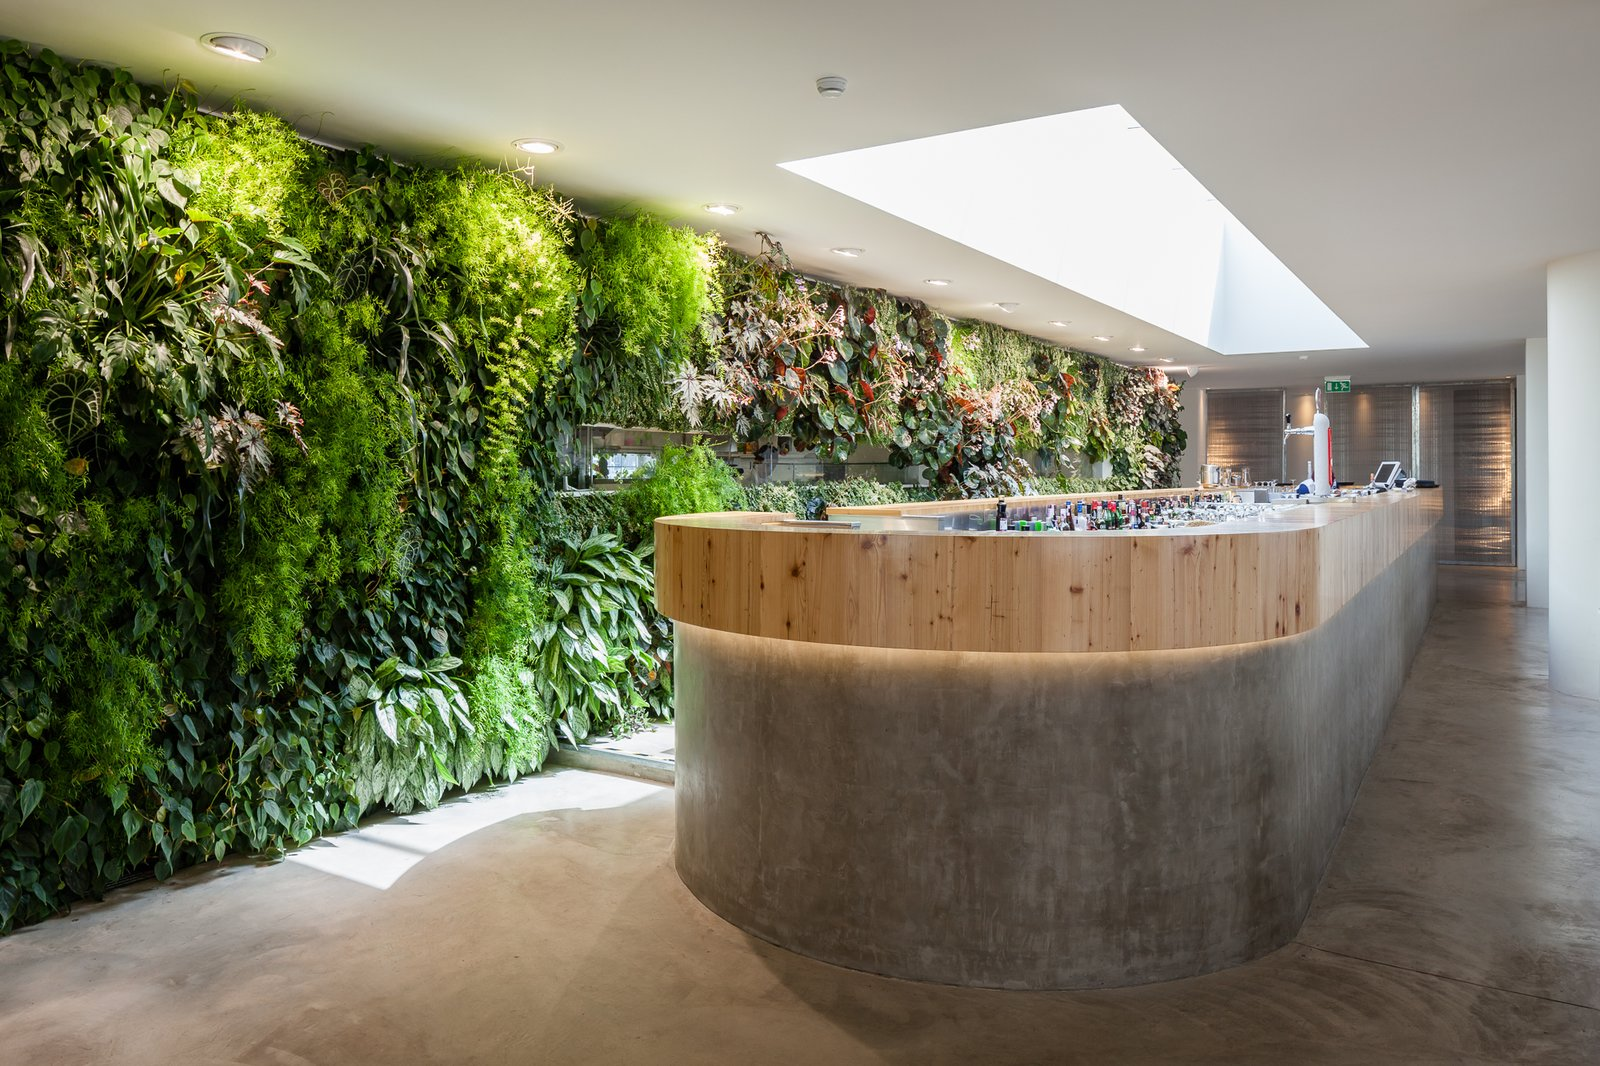 A custom bar sits underneath a retractable skylight. The material palette of the interior is simple, with white walls and concrete flooring.  Vertical Gardens Spruce Up a Dusty Monument by Allie Weiss